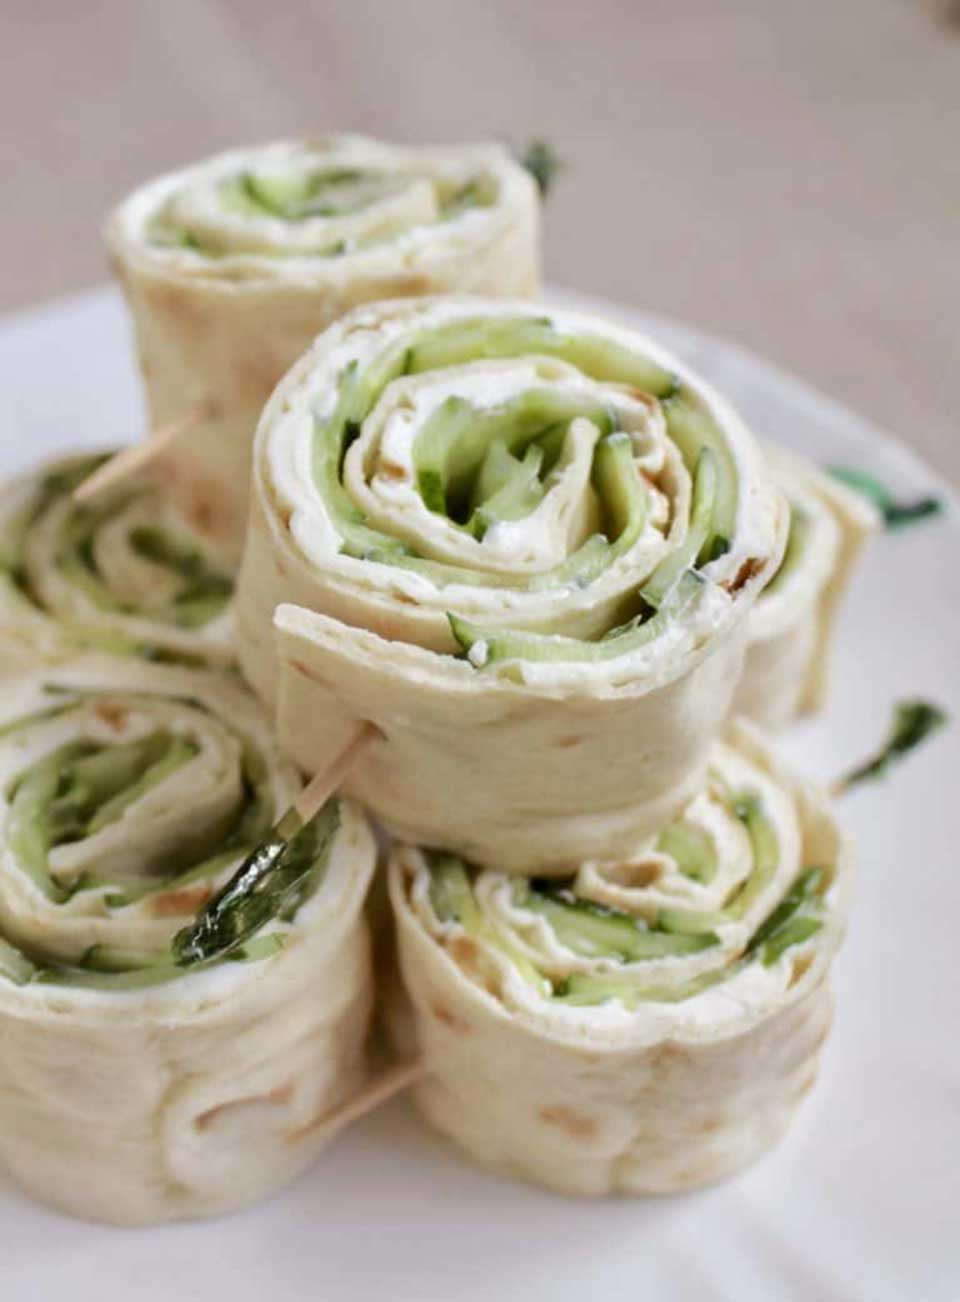 Two-tier stack of 6 sandwiches skewered with green picks on a white plate.